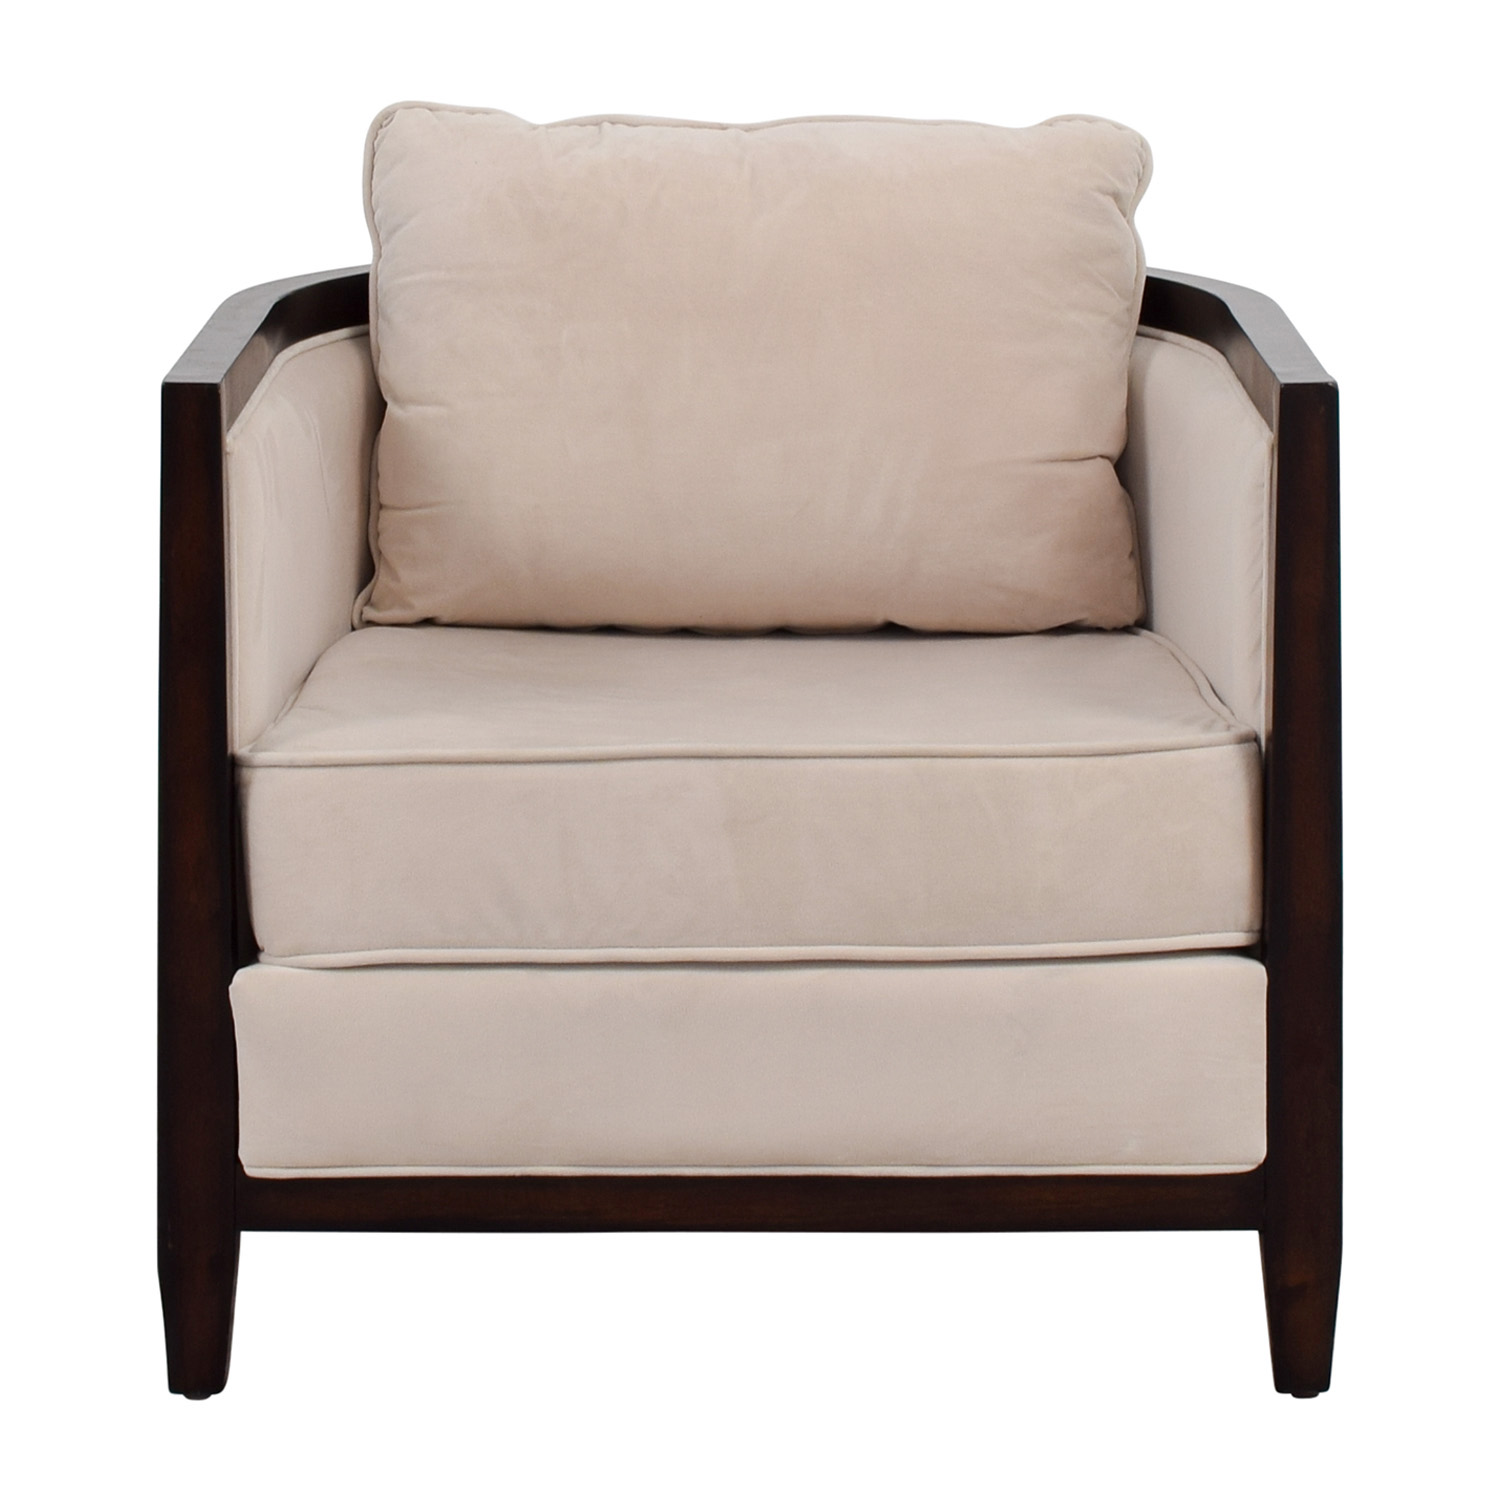 Coaster Coaster Beige Leisure Accent Chair used